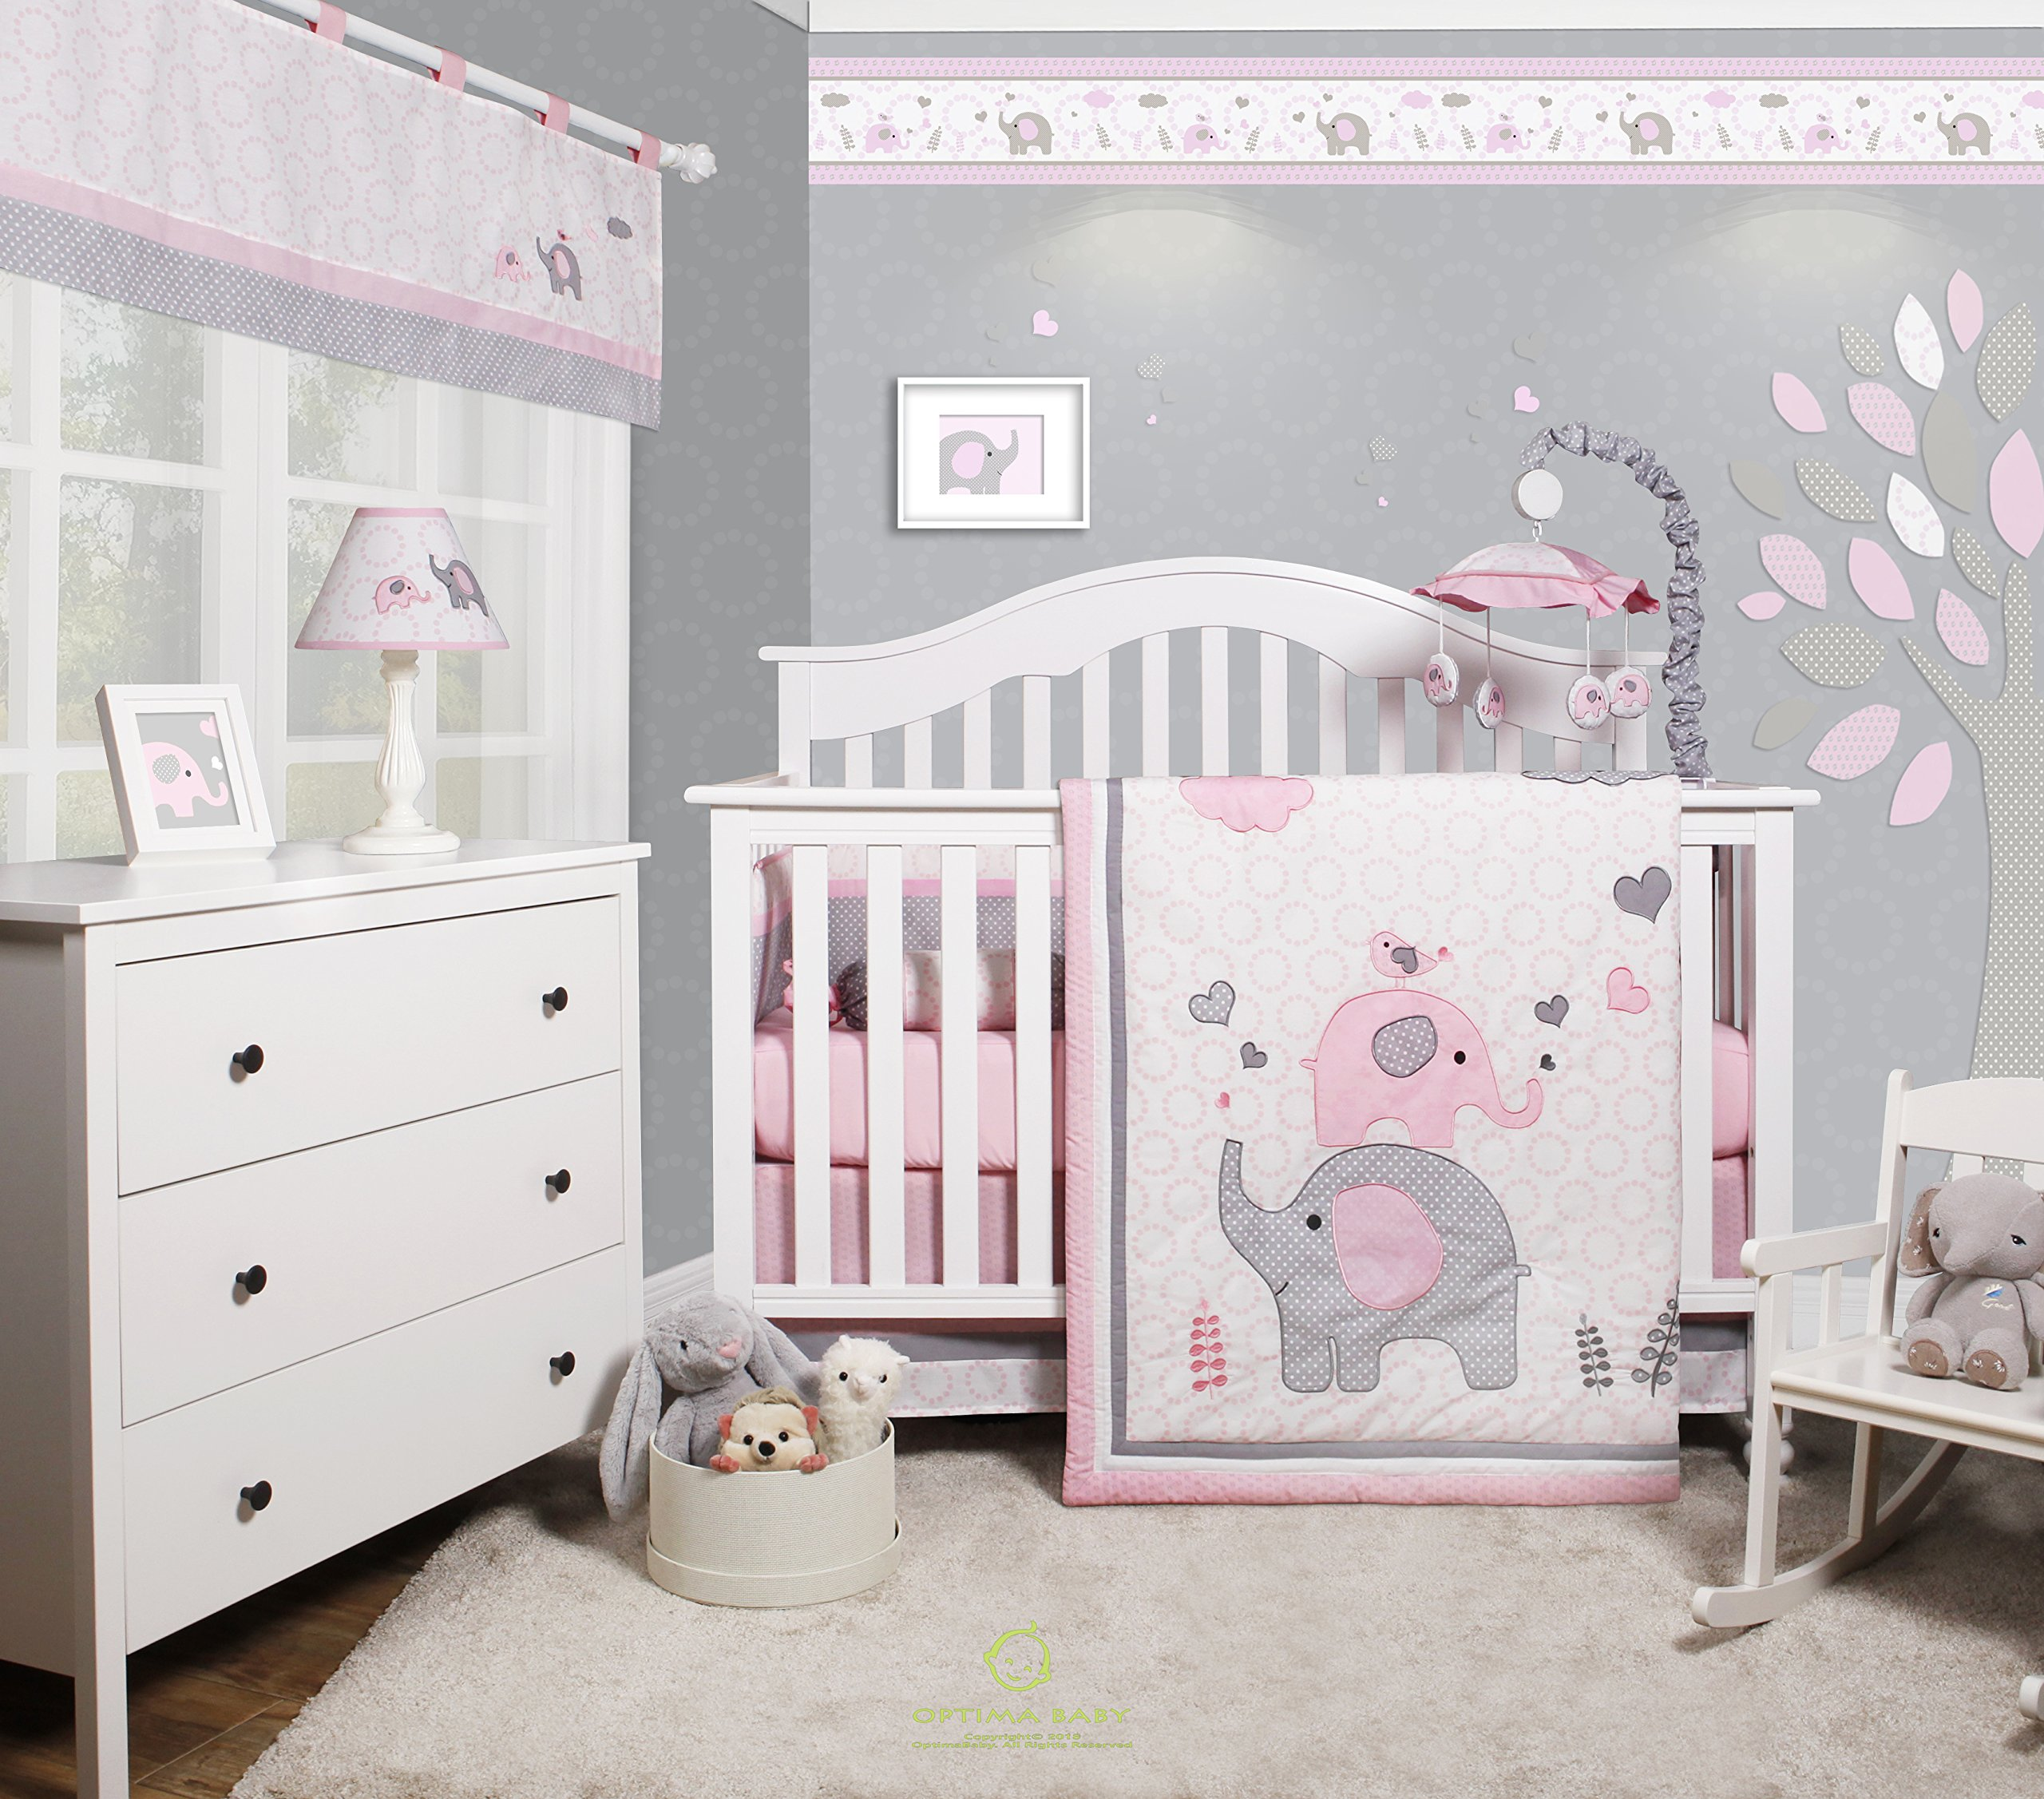 Elephant Twin Nursery Wall Art Nursery Room Decor For Twins: Amazon.com : Just Born Musical Mobile, Grey/Pink Elephants